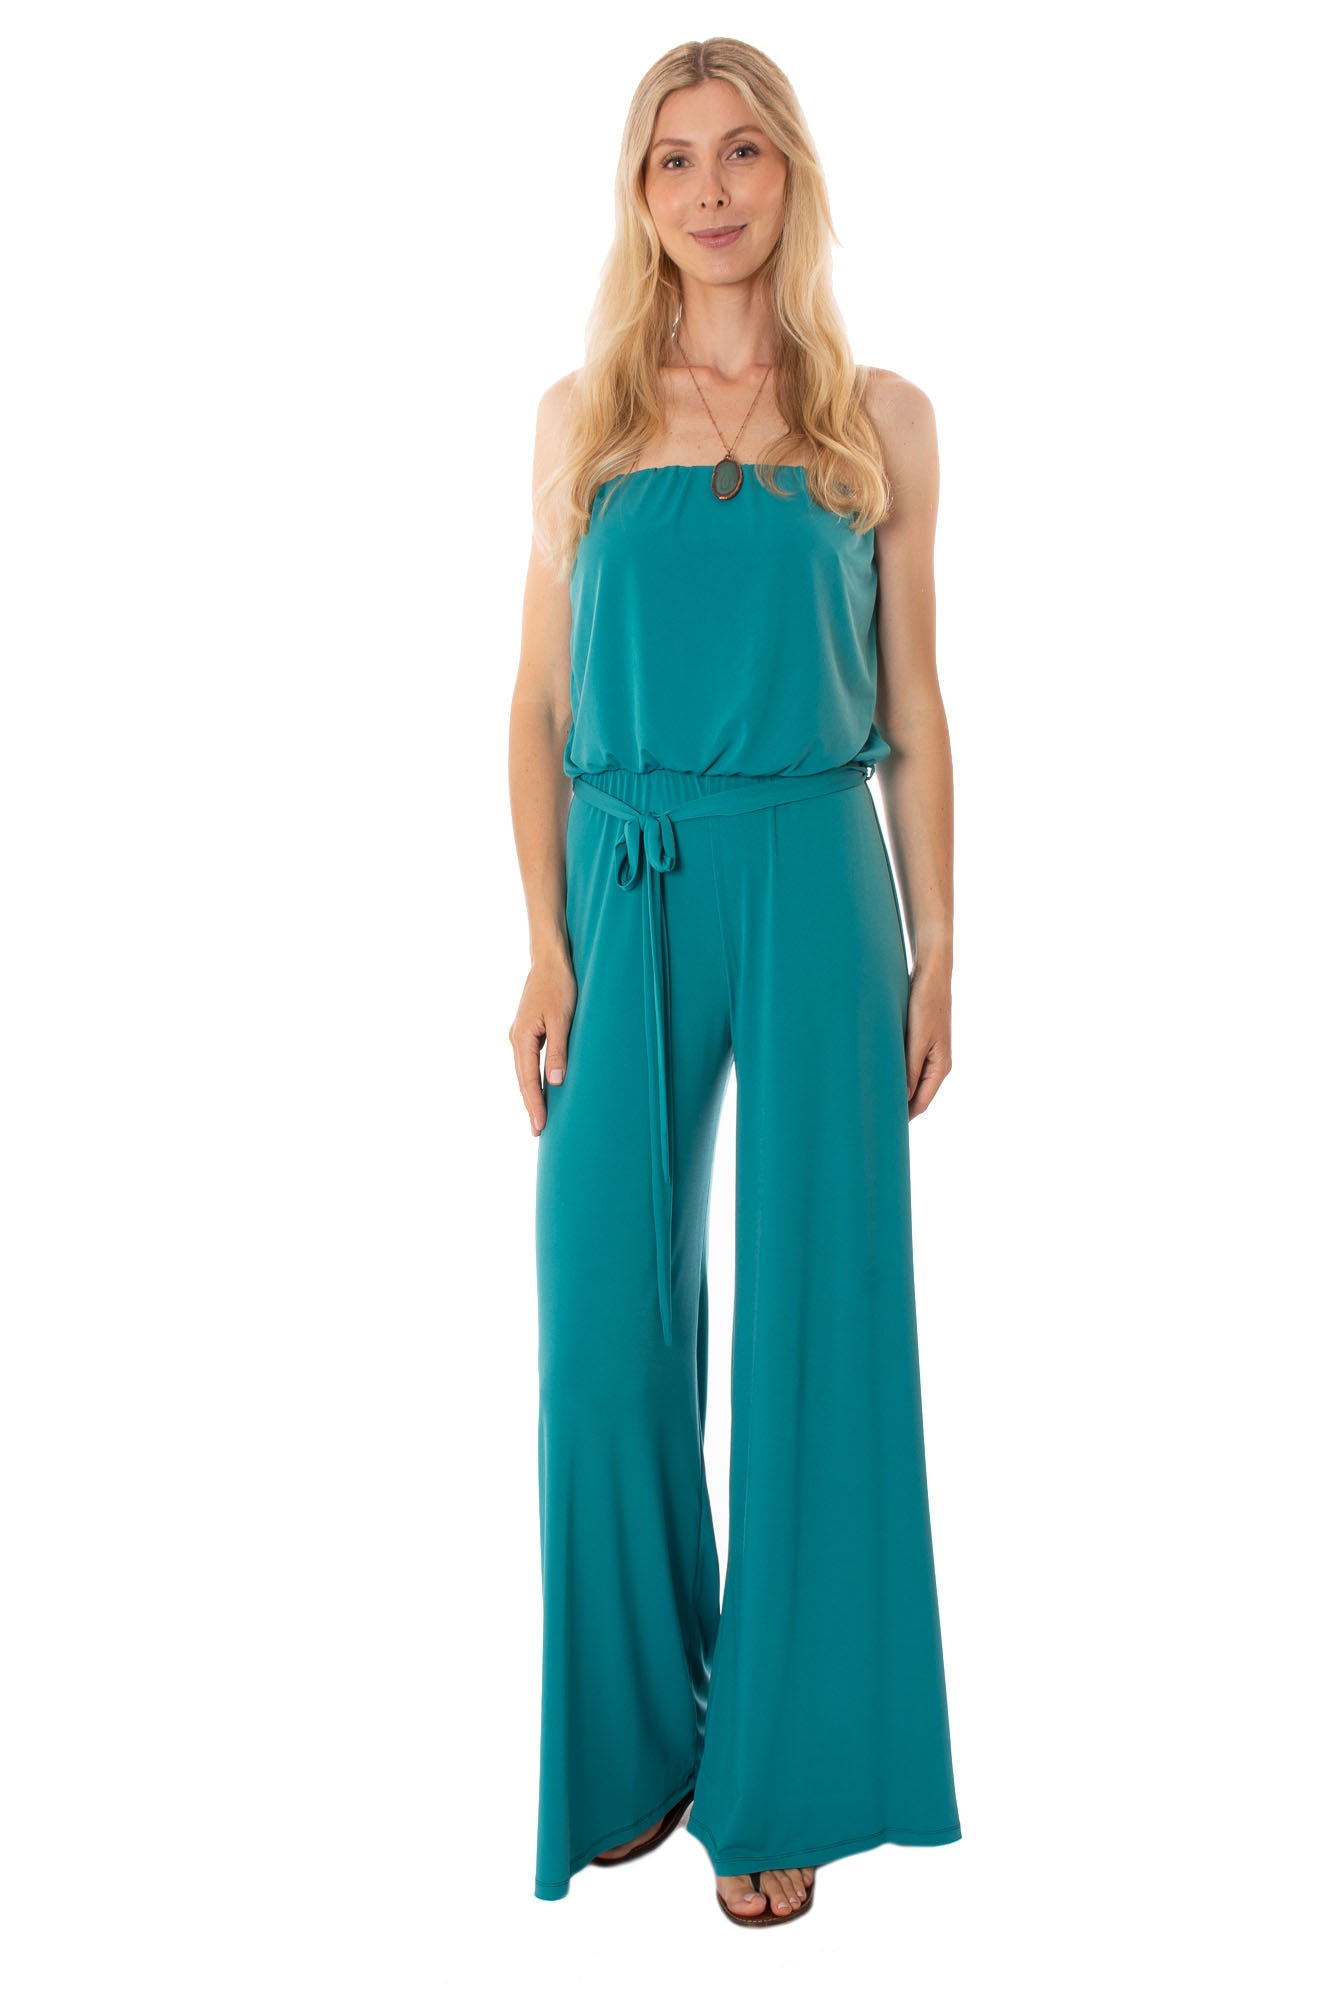 Hippie Guilt - Mary Straples Jumpsuit (HJ0006, Teal)